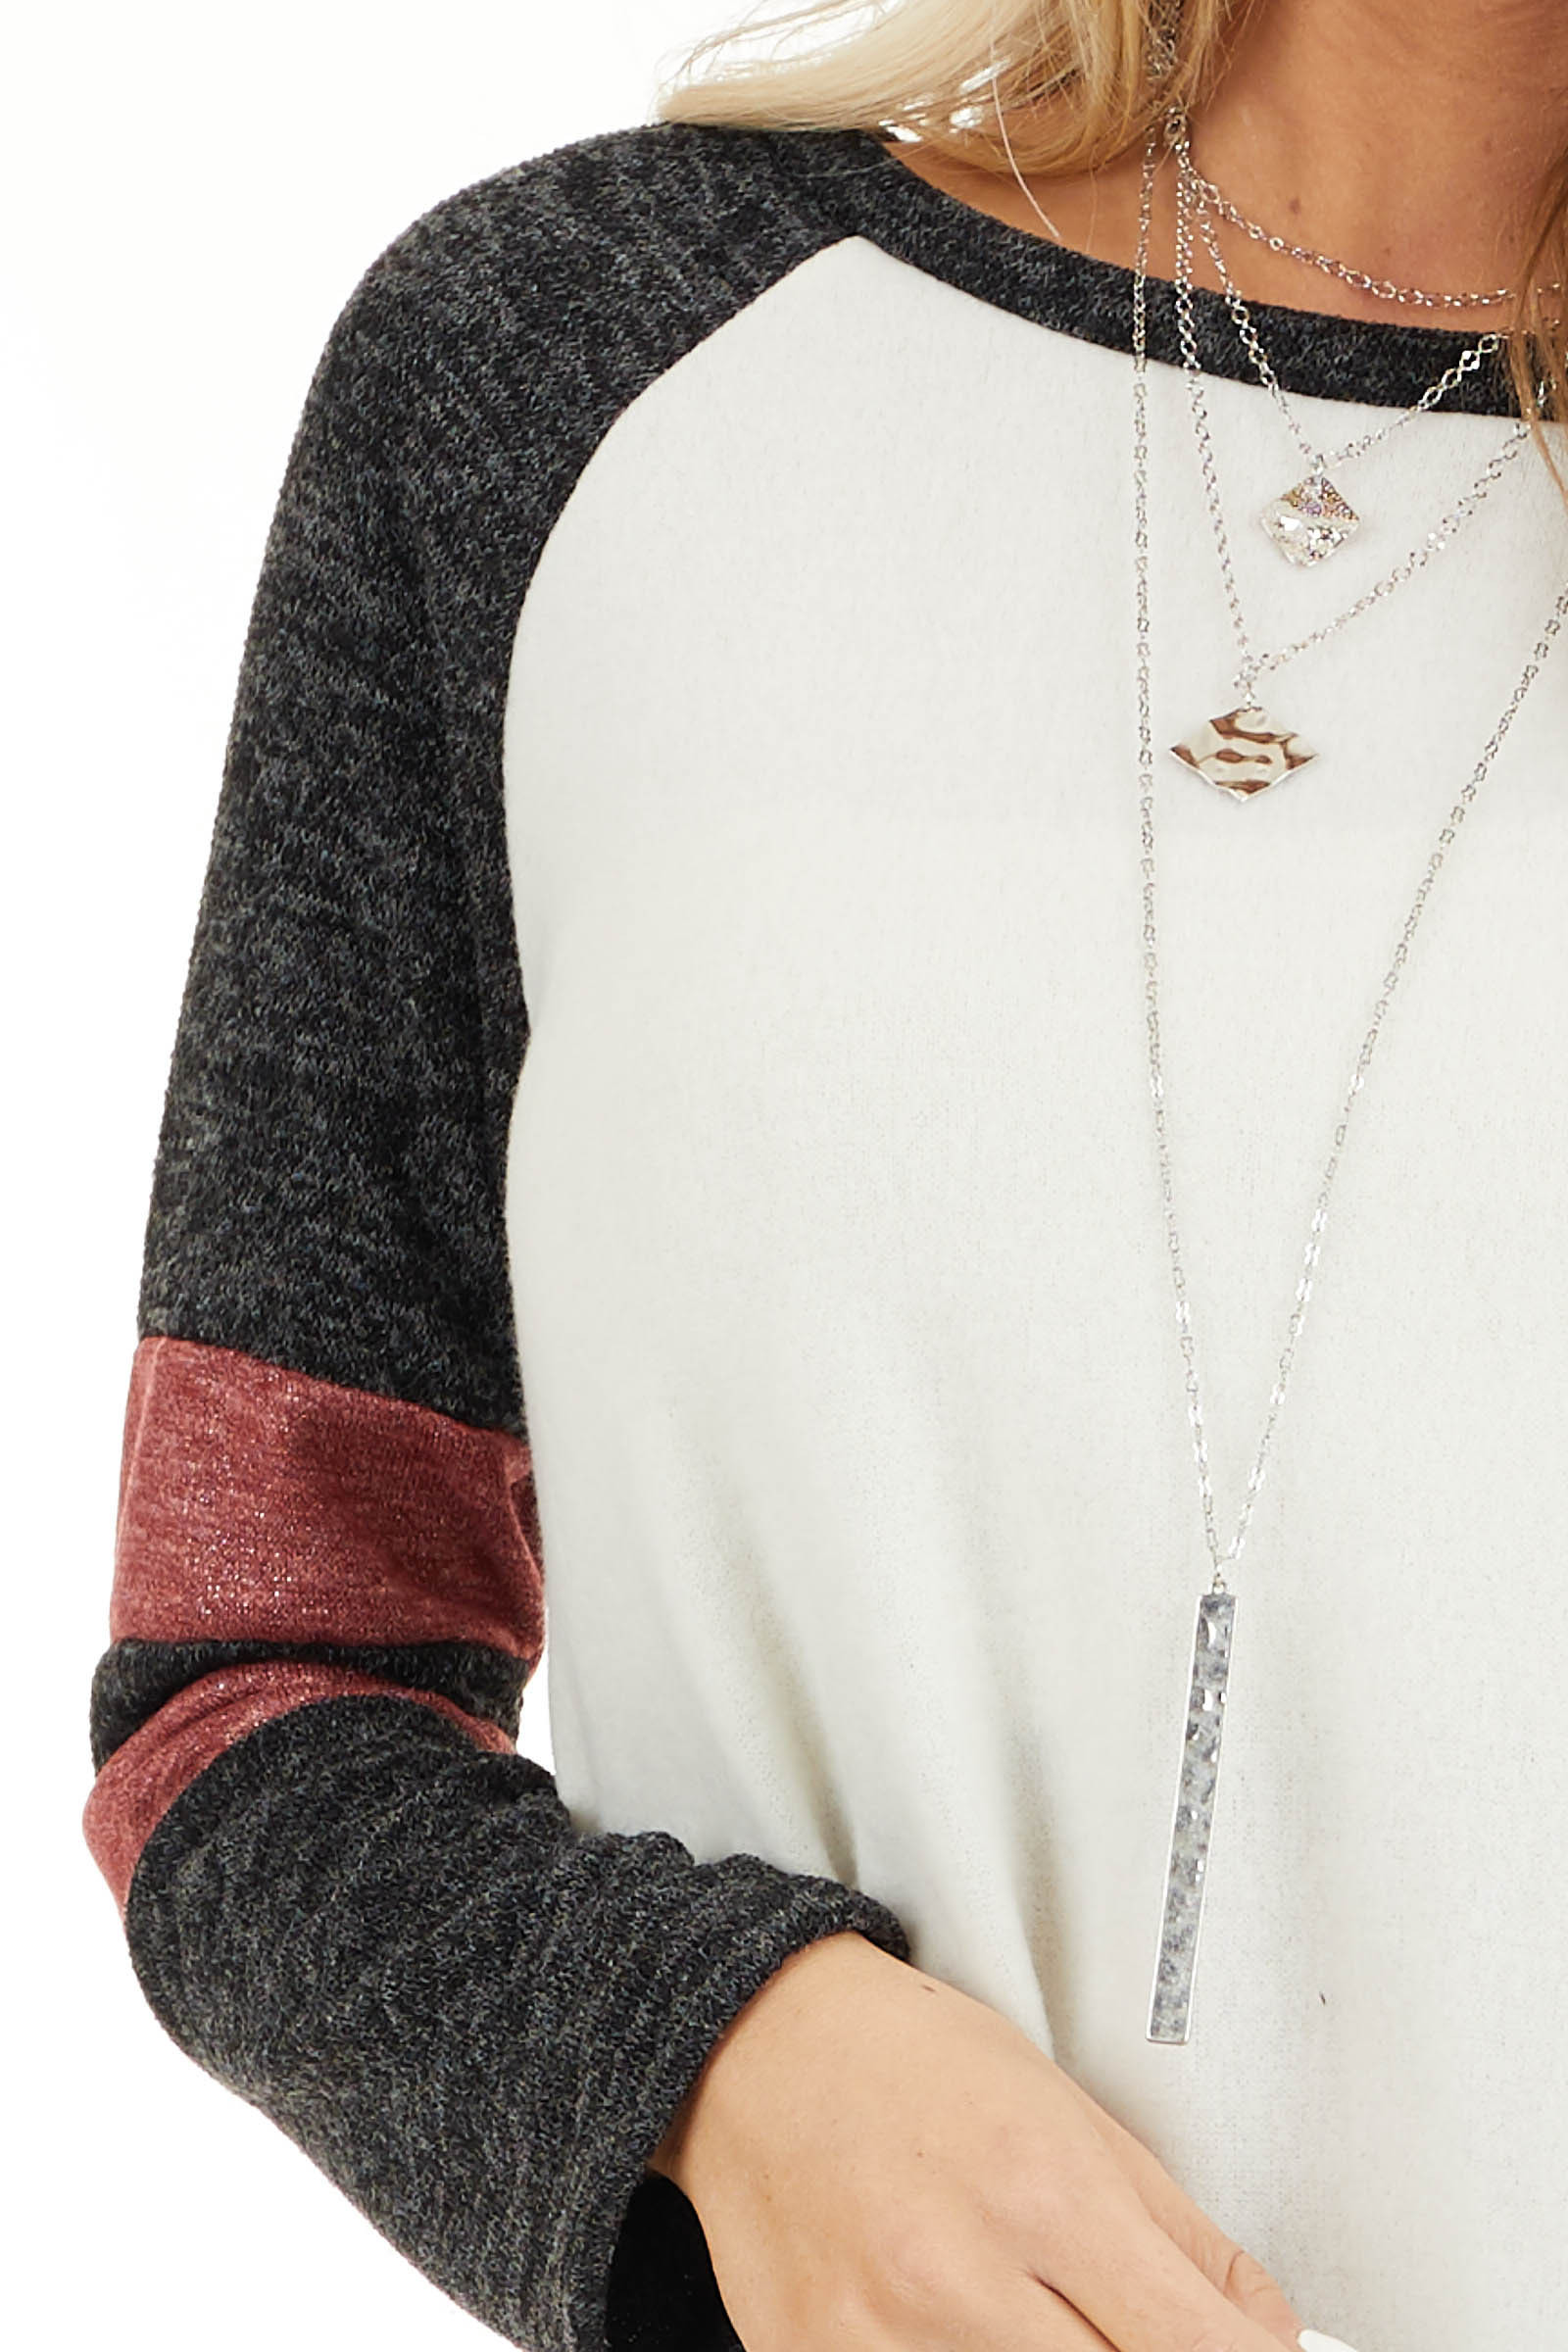 Ivory and Charcoal Long Sleeve Top with Sleeve Stripe Detail detail